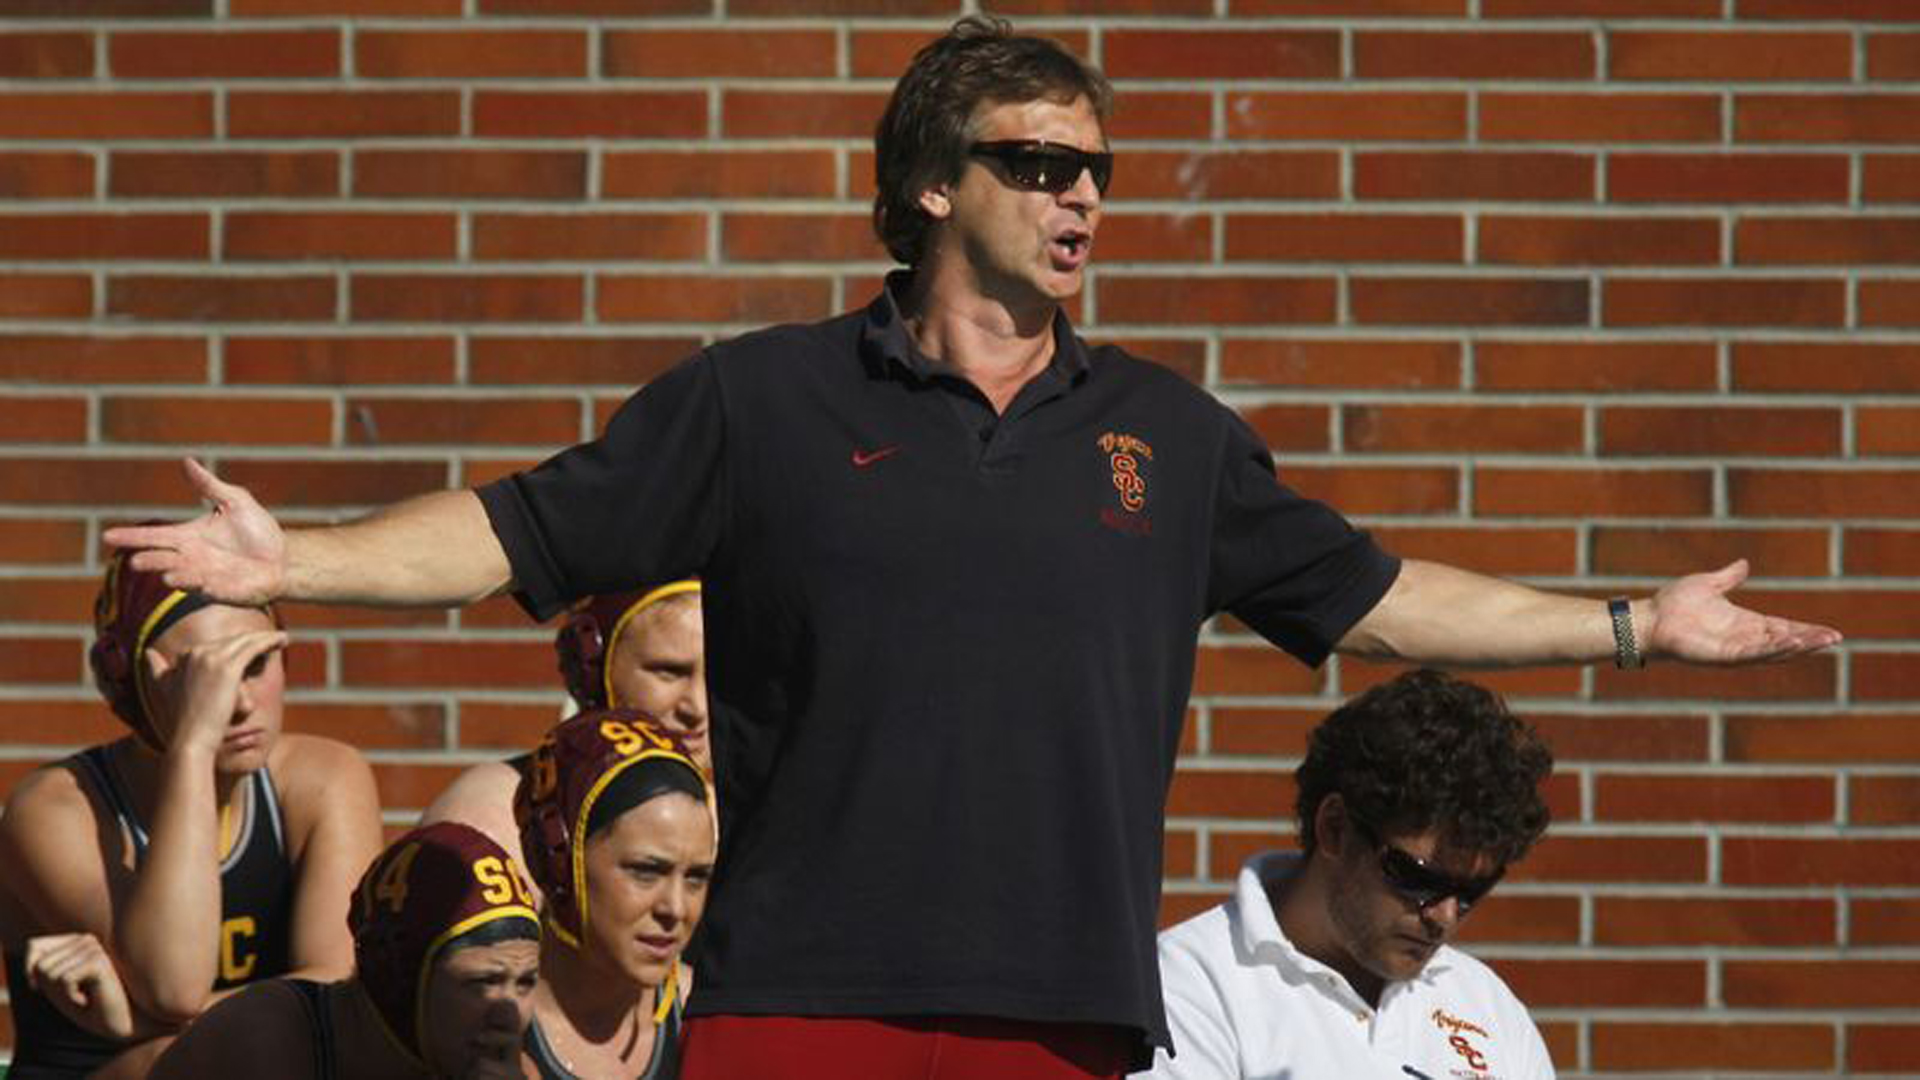 USC water polo coach Jovan Vavic, who has led the men's and women's teams to a combined 16 national championships, is seen in a file photo from 2012. (Credit: Brian van der Brug / Los Angeles Times)